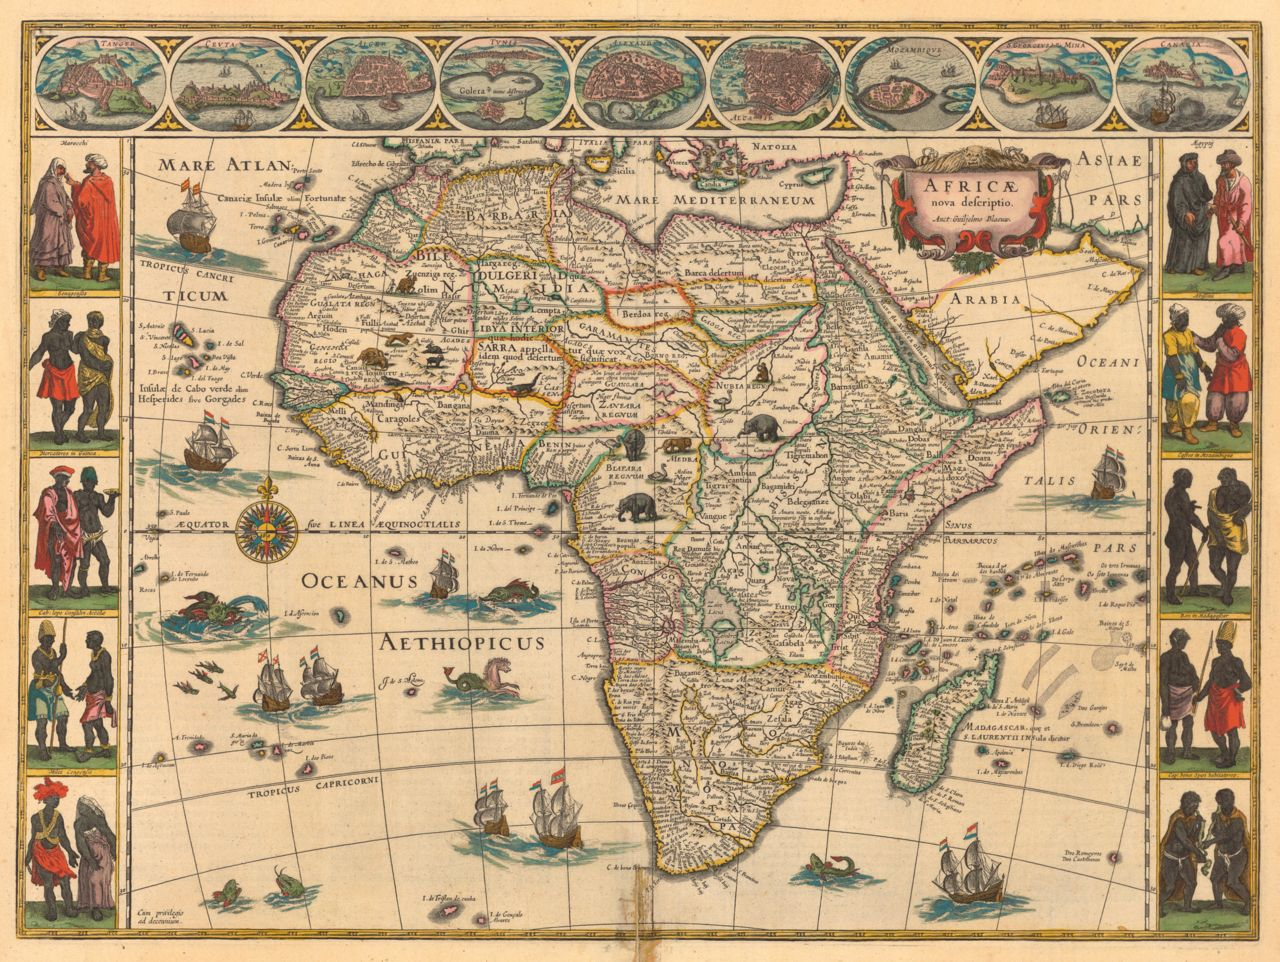 One of the most decorative and popular of all early maps of Africa